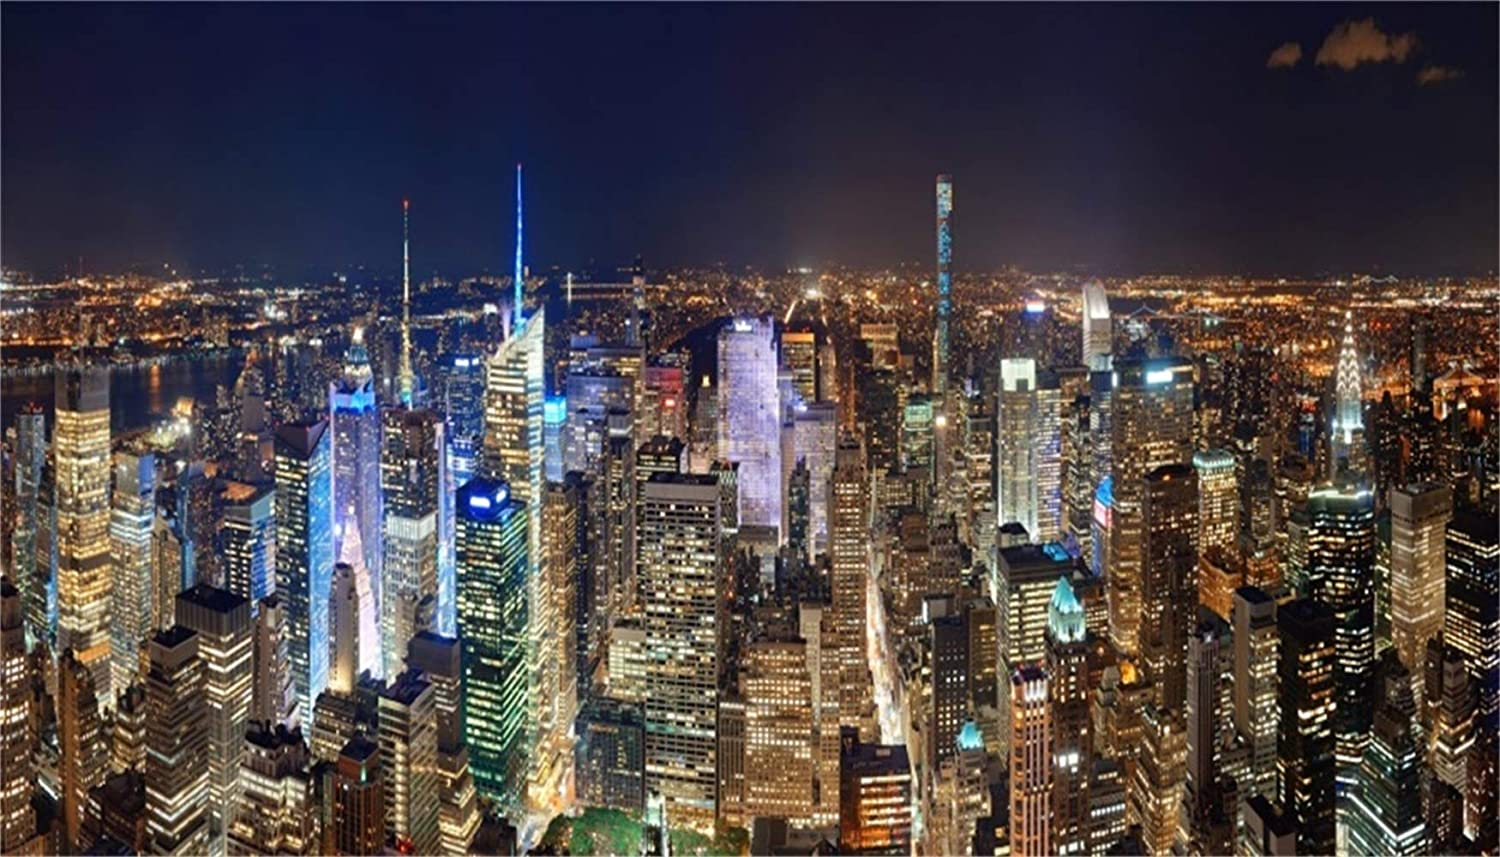 GoEoo 12x6.5ft Beautiful New York City Nightscape Backdrop Vinyl Overpass Across The Still Lake Metropolis Skyscrapers Reflect On The Water Background Event Activities Shoot Landscape Wallpaper